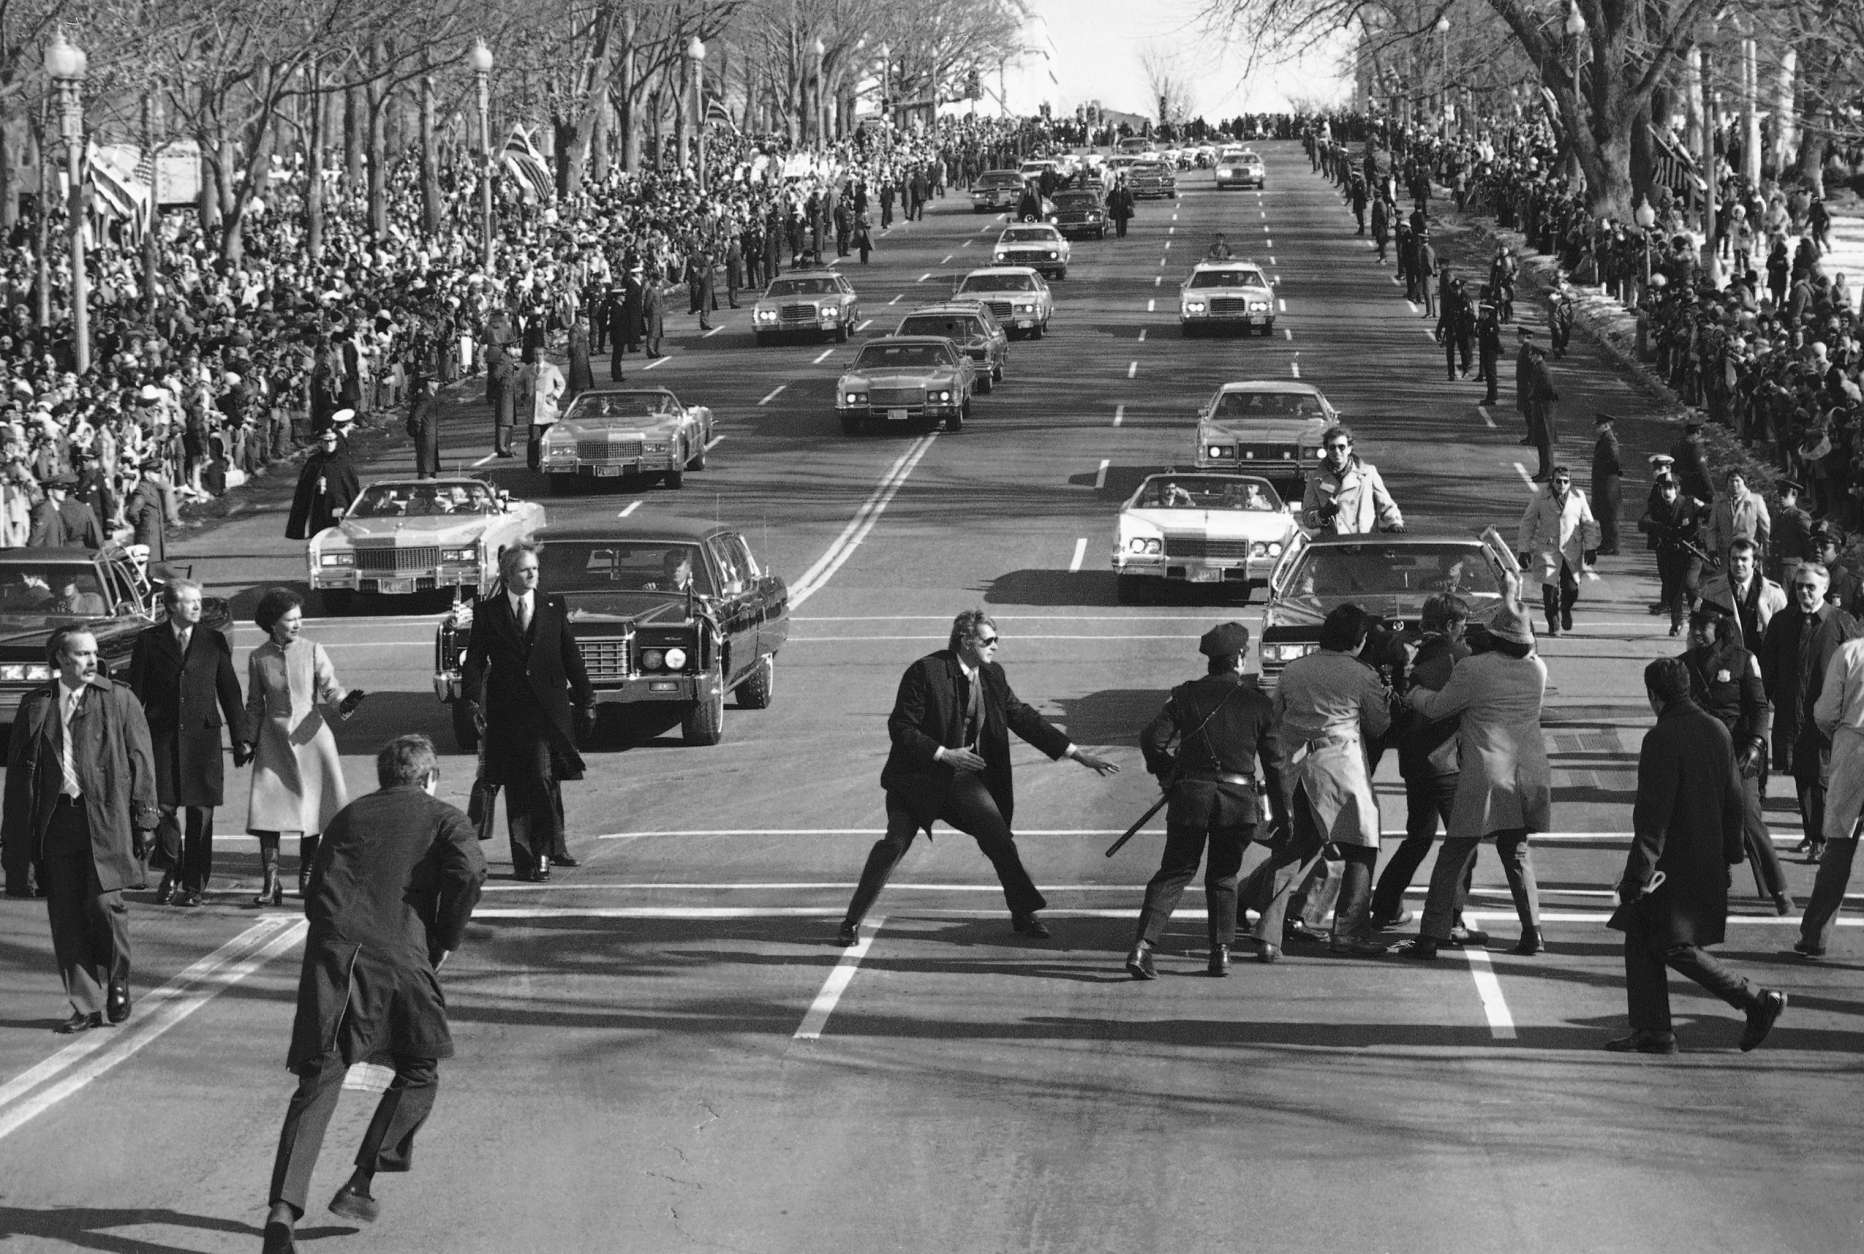 President Jimmy Carter and first lady Rosalynn watch, left, as police and Secret Service officials remove a spectator, right, who burst into the Inaugural Parade on Pennsylvania Avenue Thursday, Jan. 20, 1977 in Washington. (AP photo)